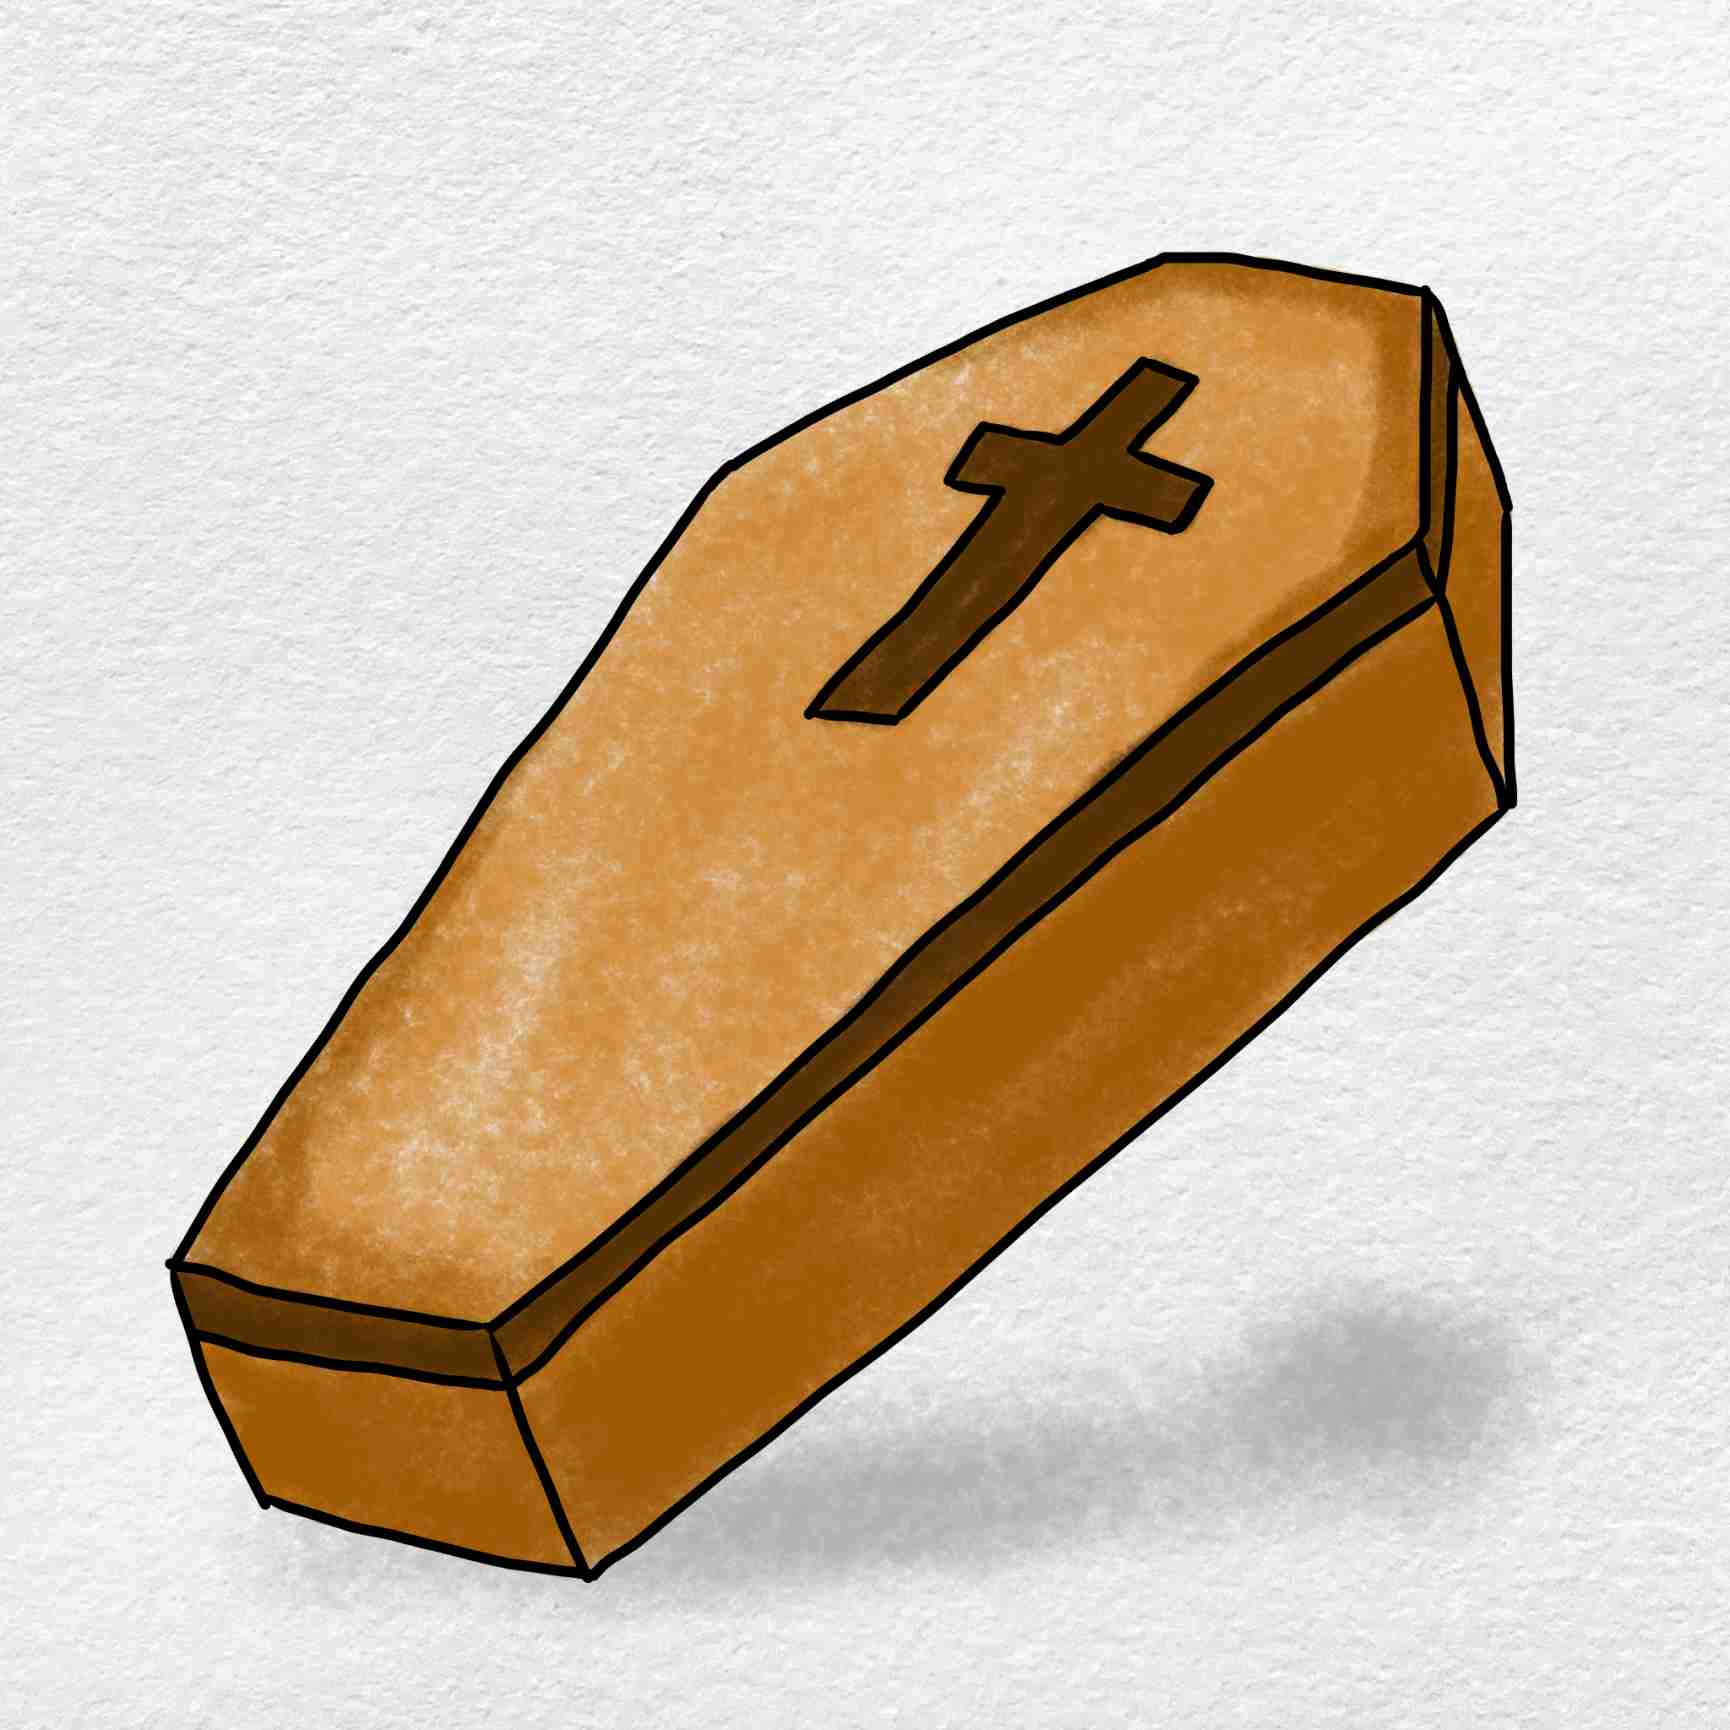 How To Draw A Coffin: Step 6